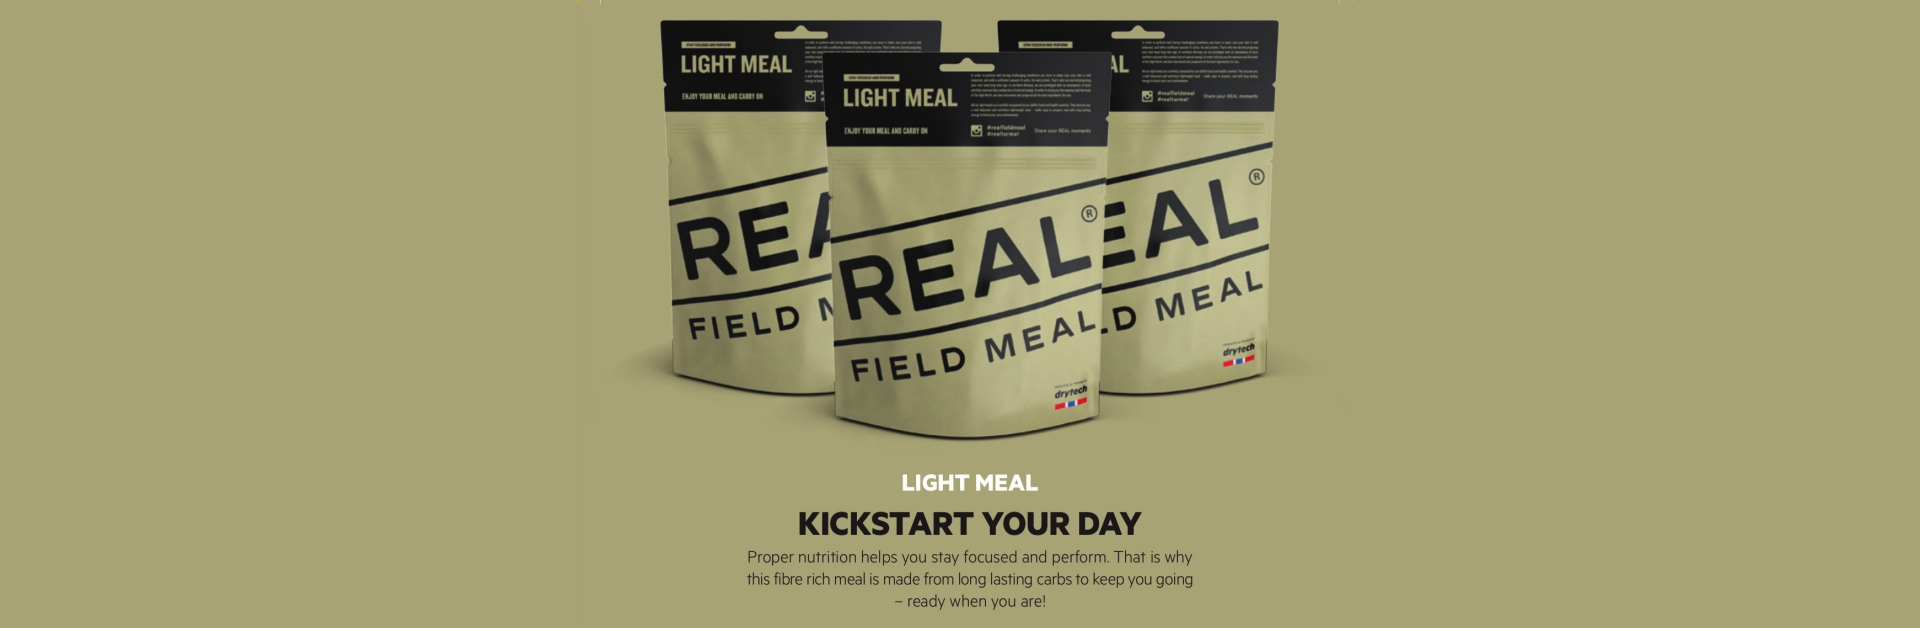 Kickstart your day with REAL Field Meal